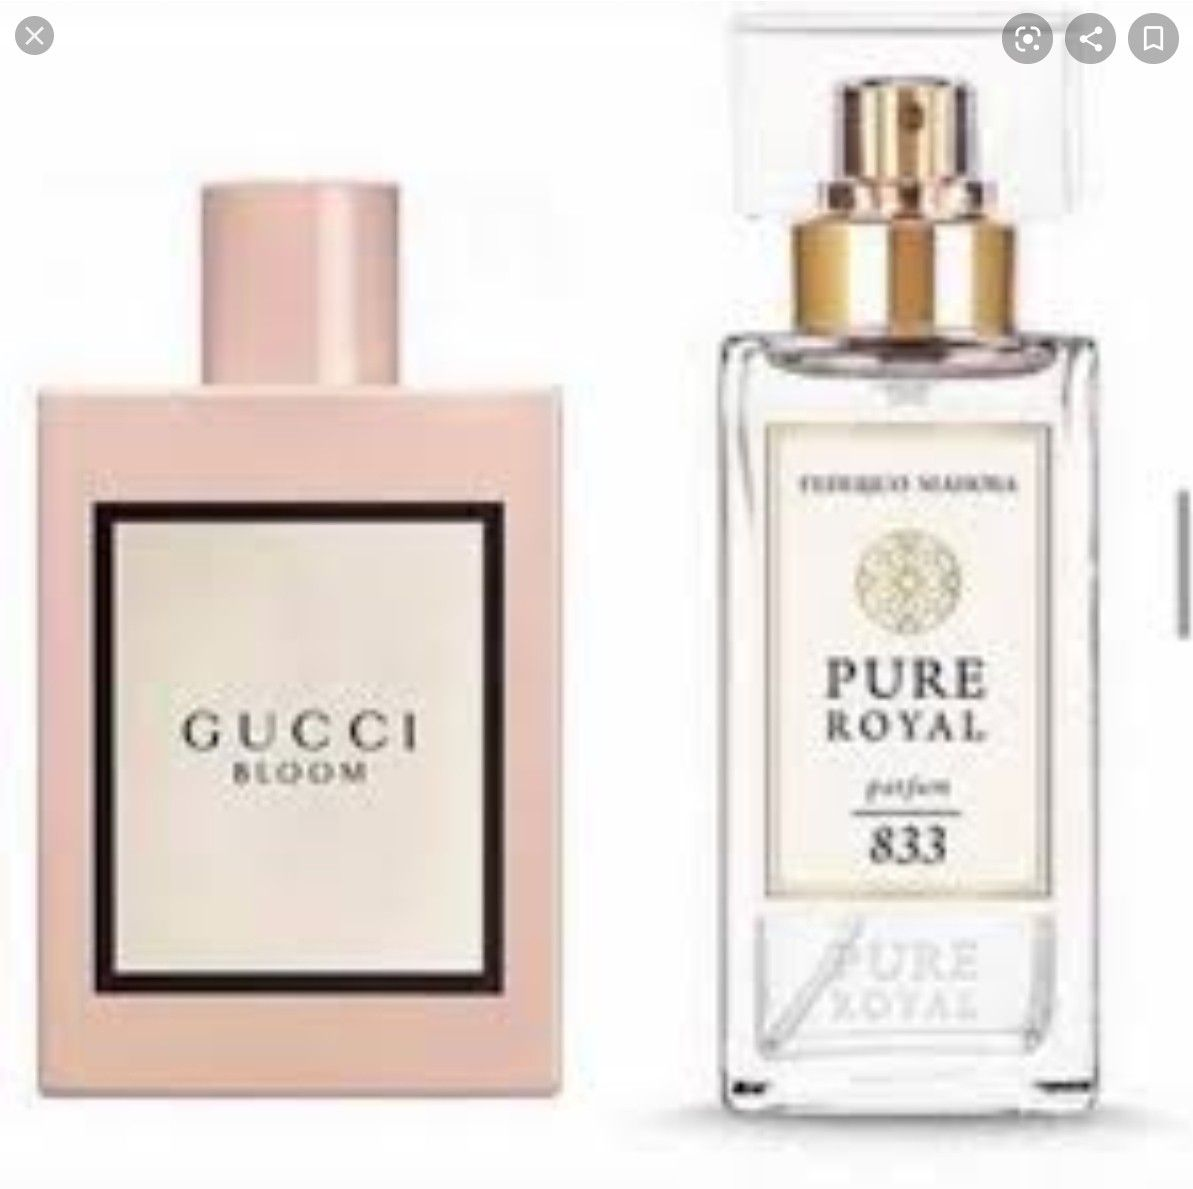 Gucci Bloom inspired Pure Royal 20   Gucci bloom, Fm fragrances ...